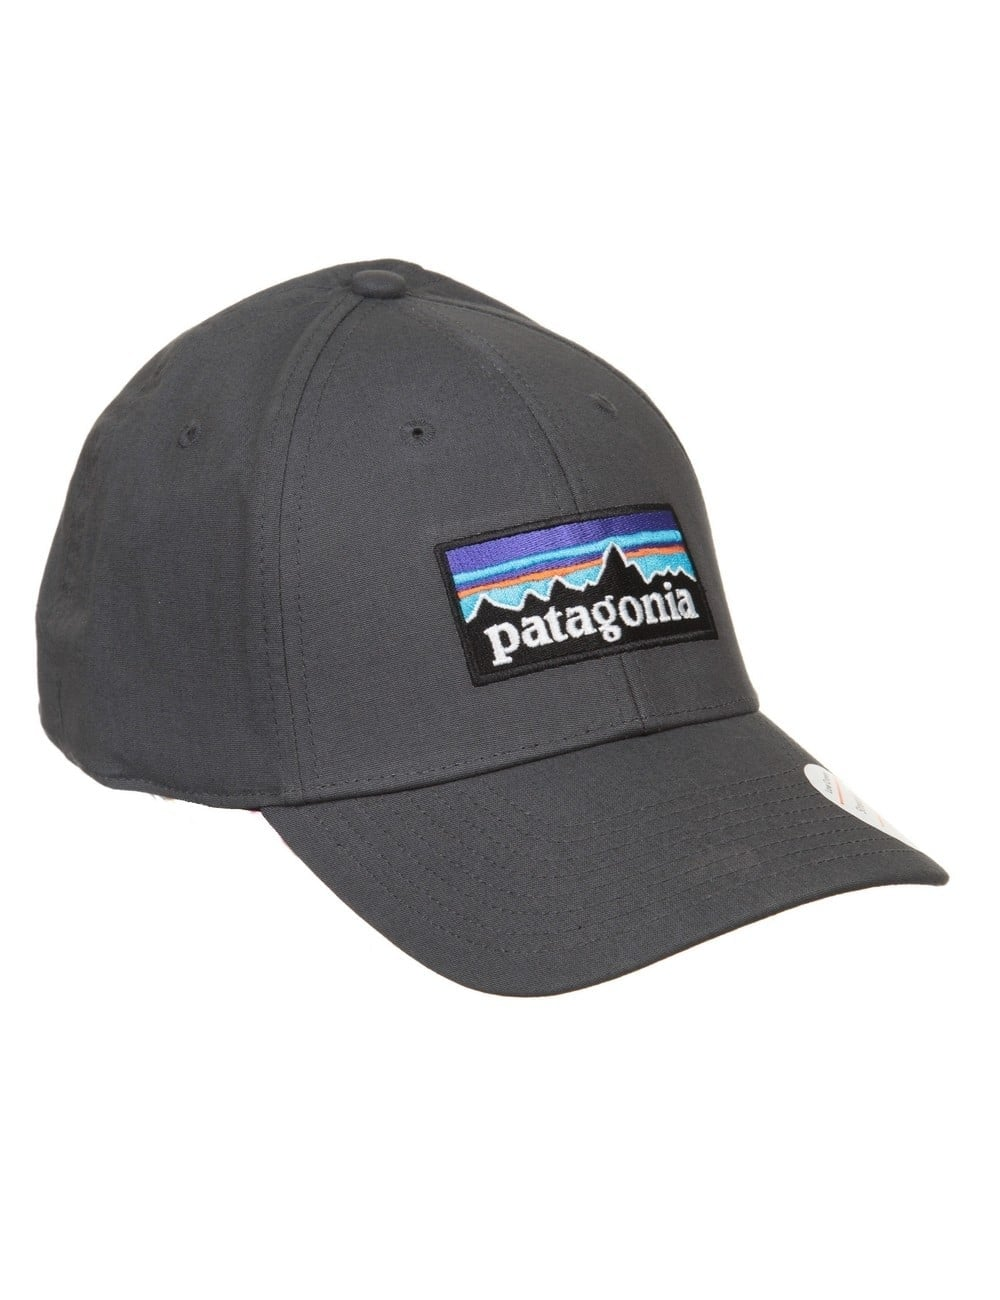 67110326fd6 Patagonia P-6 Logo Stretch Fit Hat - Forge Grey - Accessories from ...